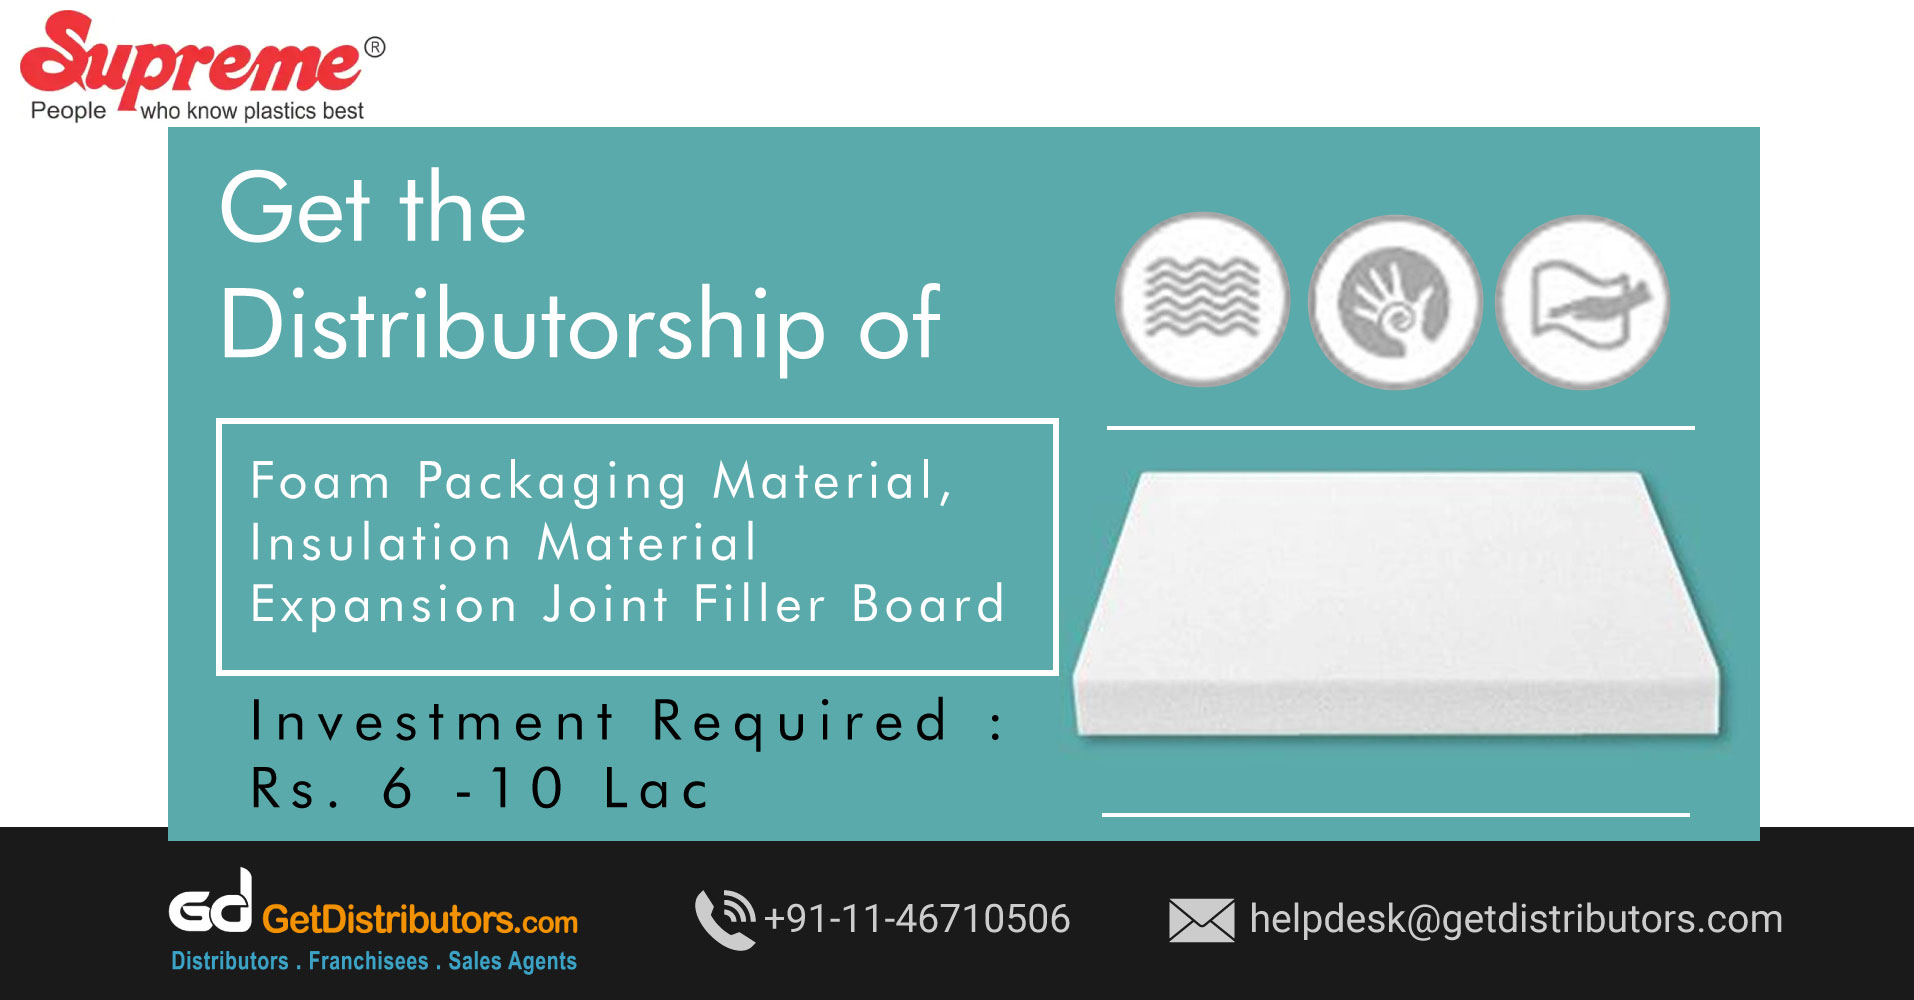 Durable Plastic Products Distributorship At Cost Effective Prices